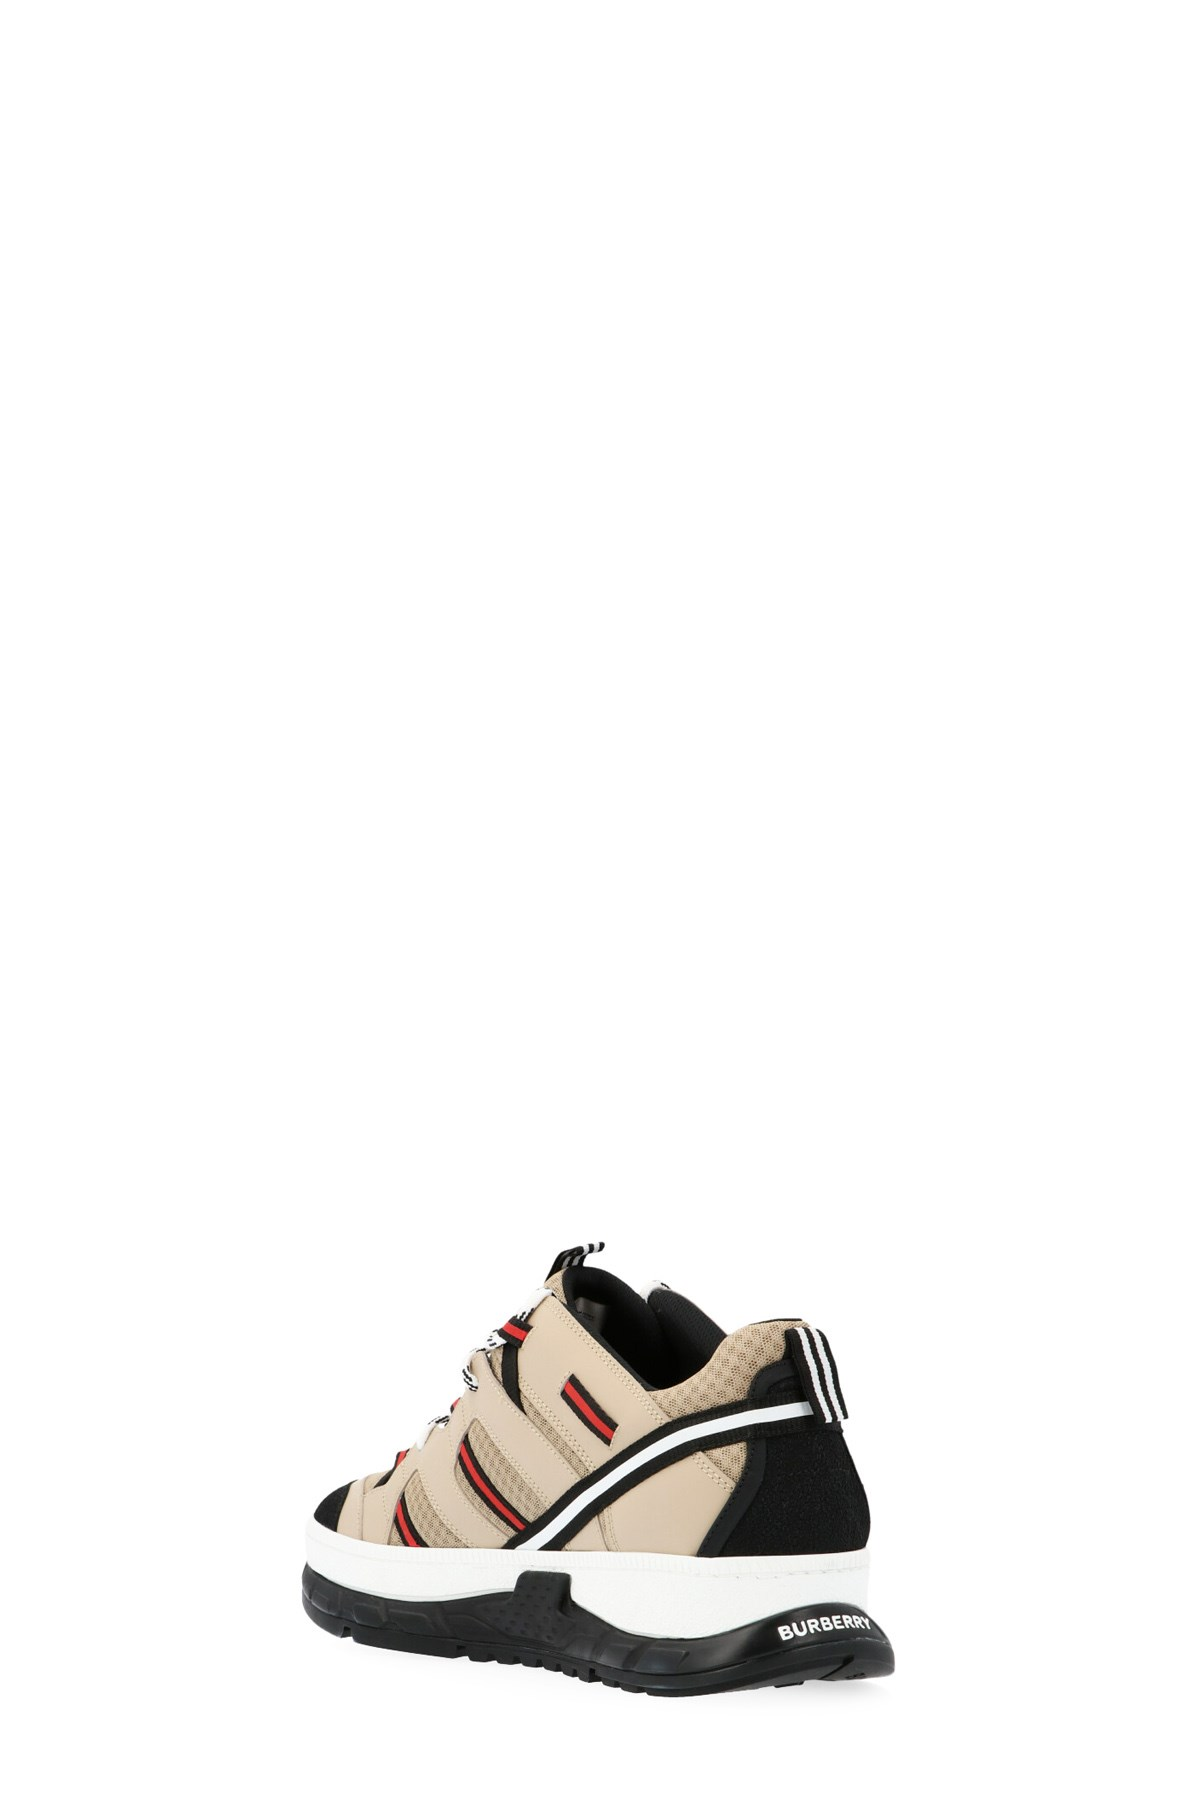 burberry 'Rs5 m low' sneakers available